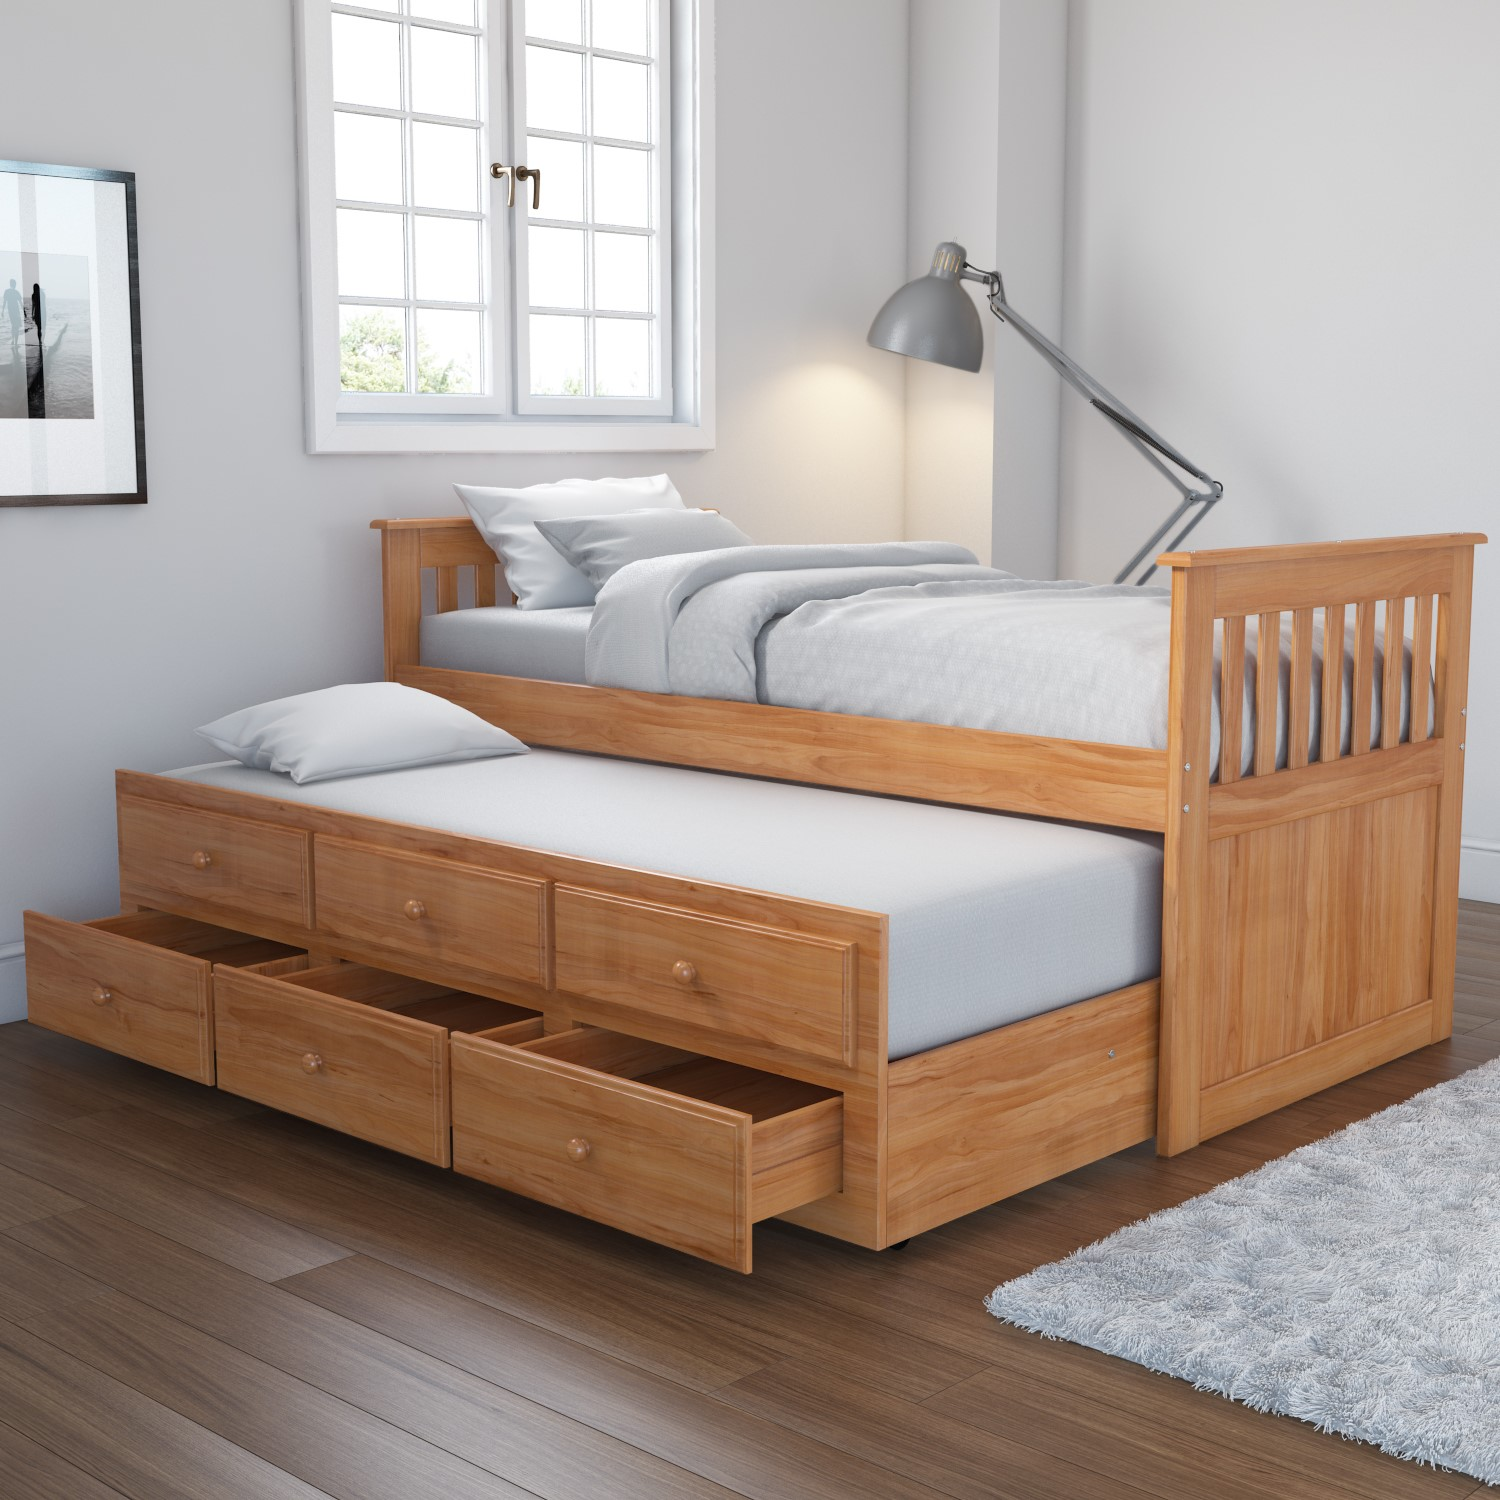 Pine Guest Bed Wood Pull Out Trundle 3 Drawer Storage